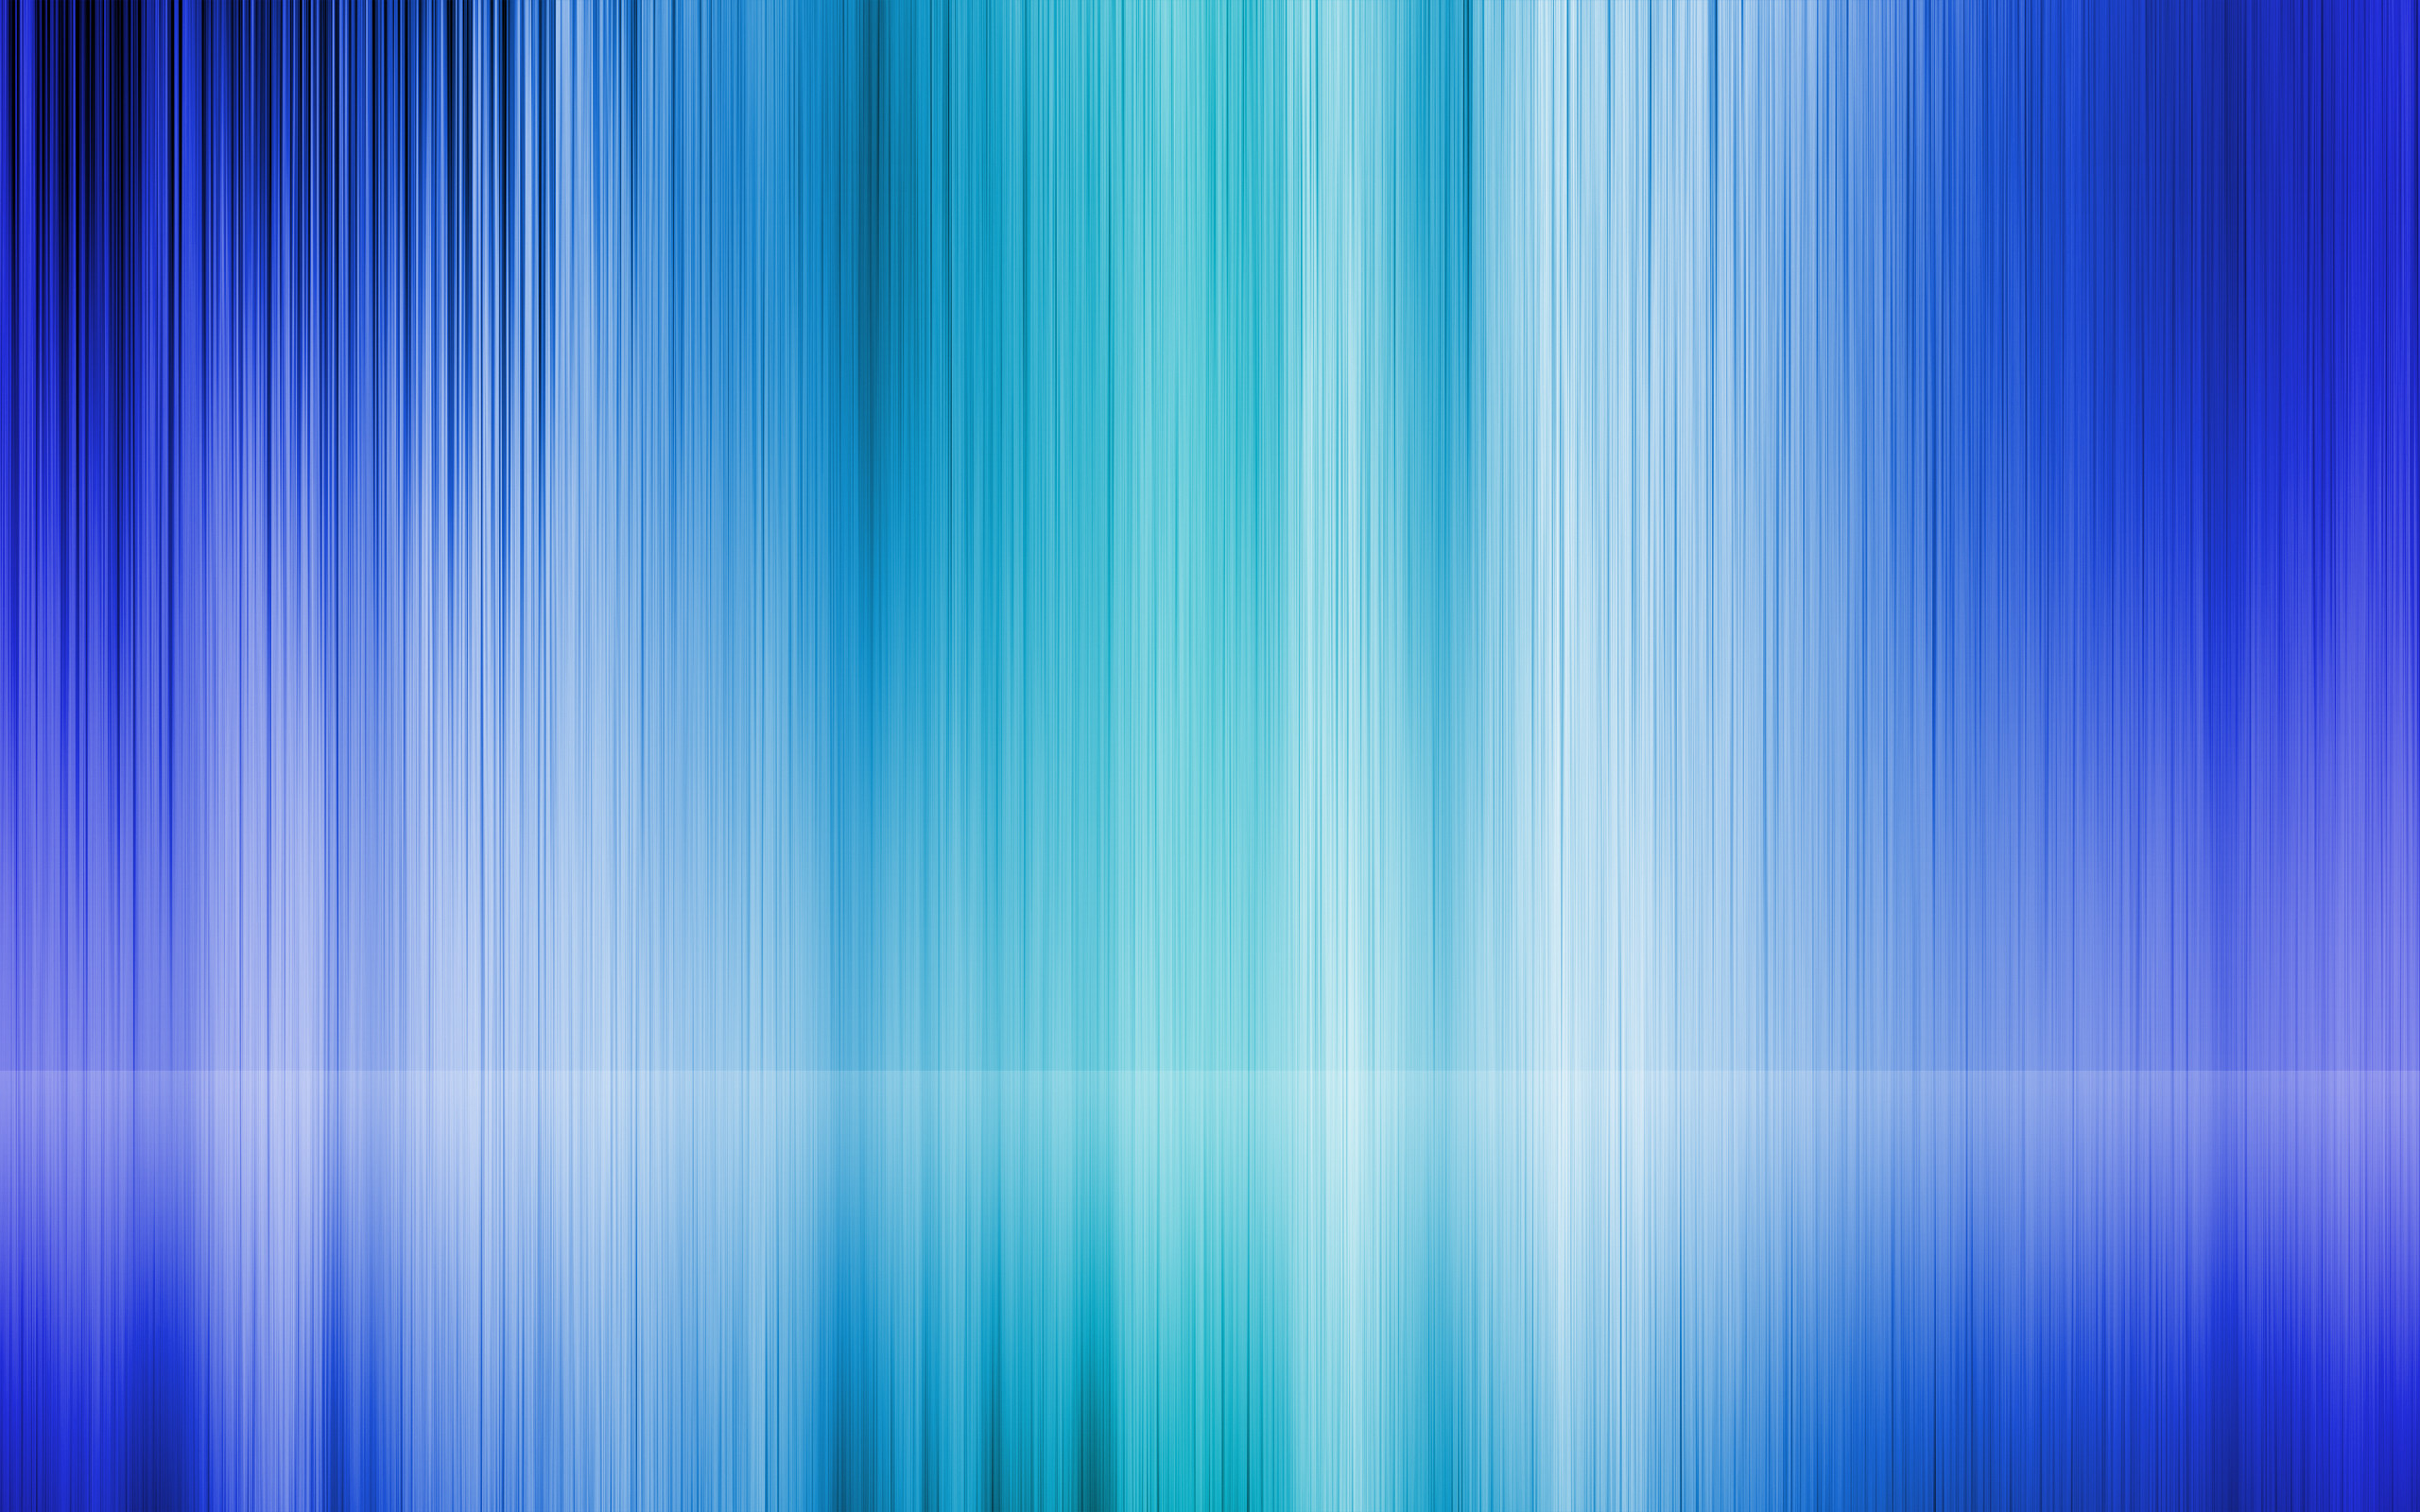 Pretty Blue Backgrounds (51+ images)